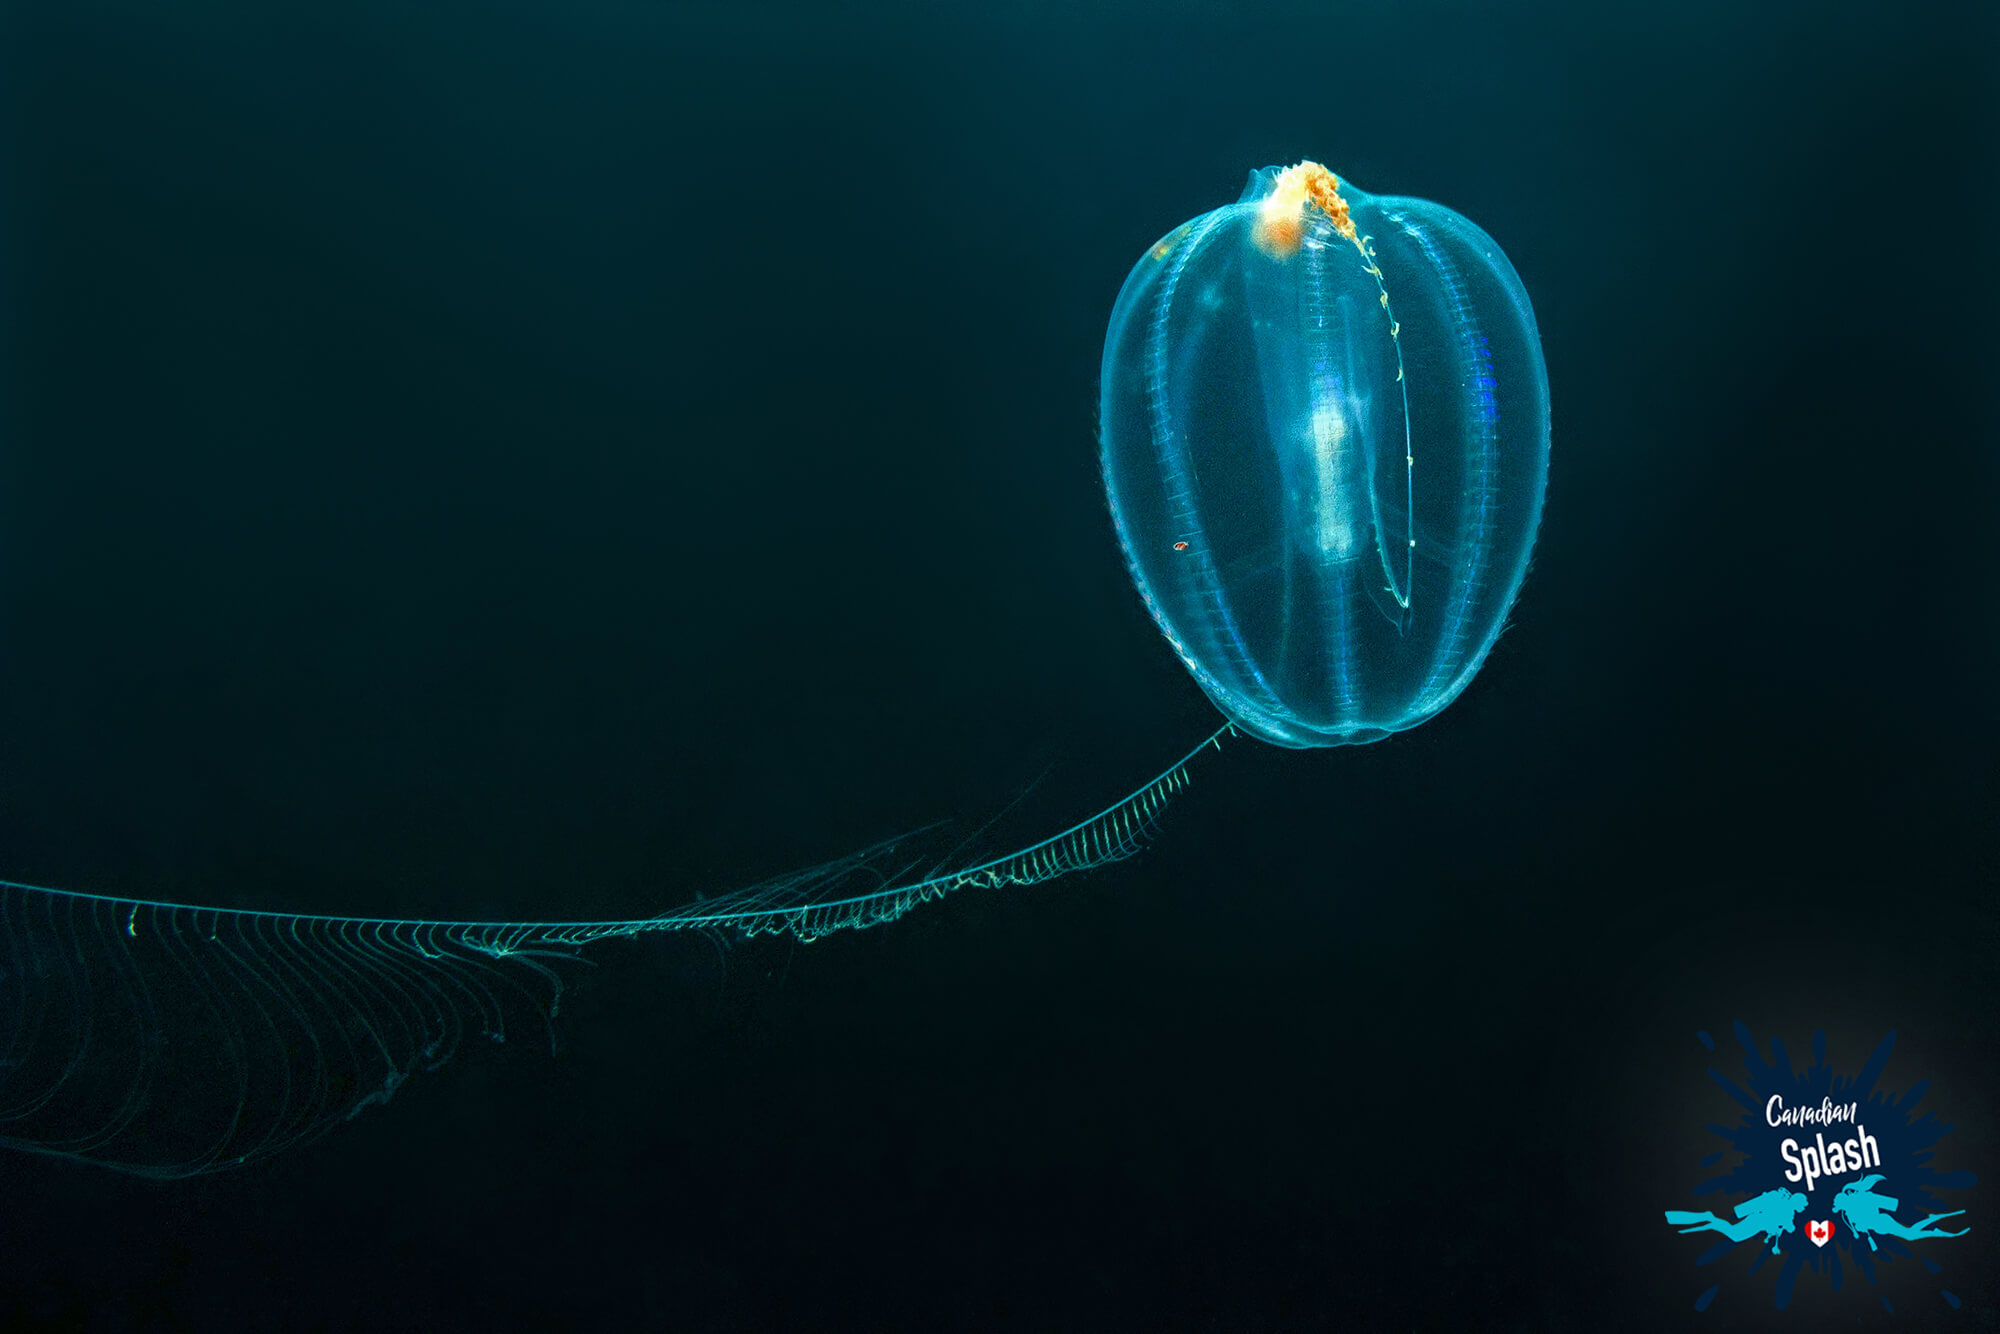 A Ctenophore in Nova Scotia